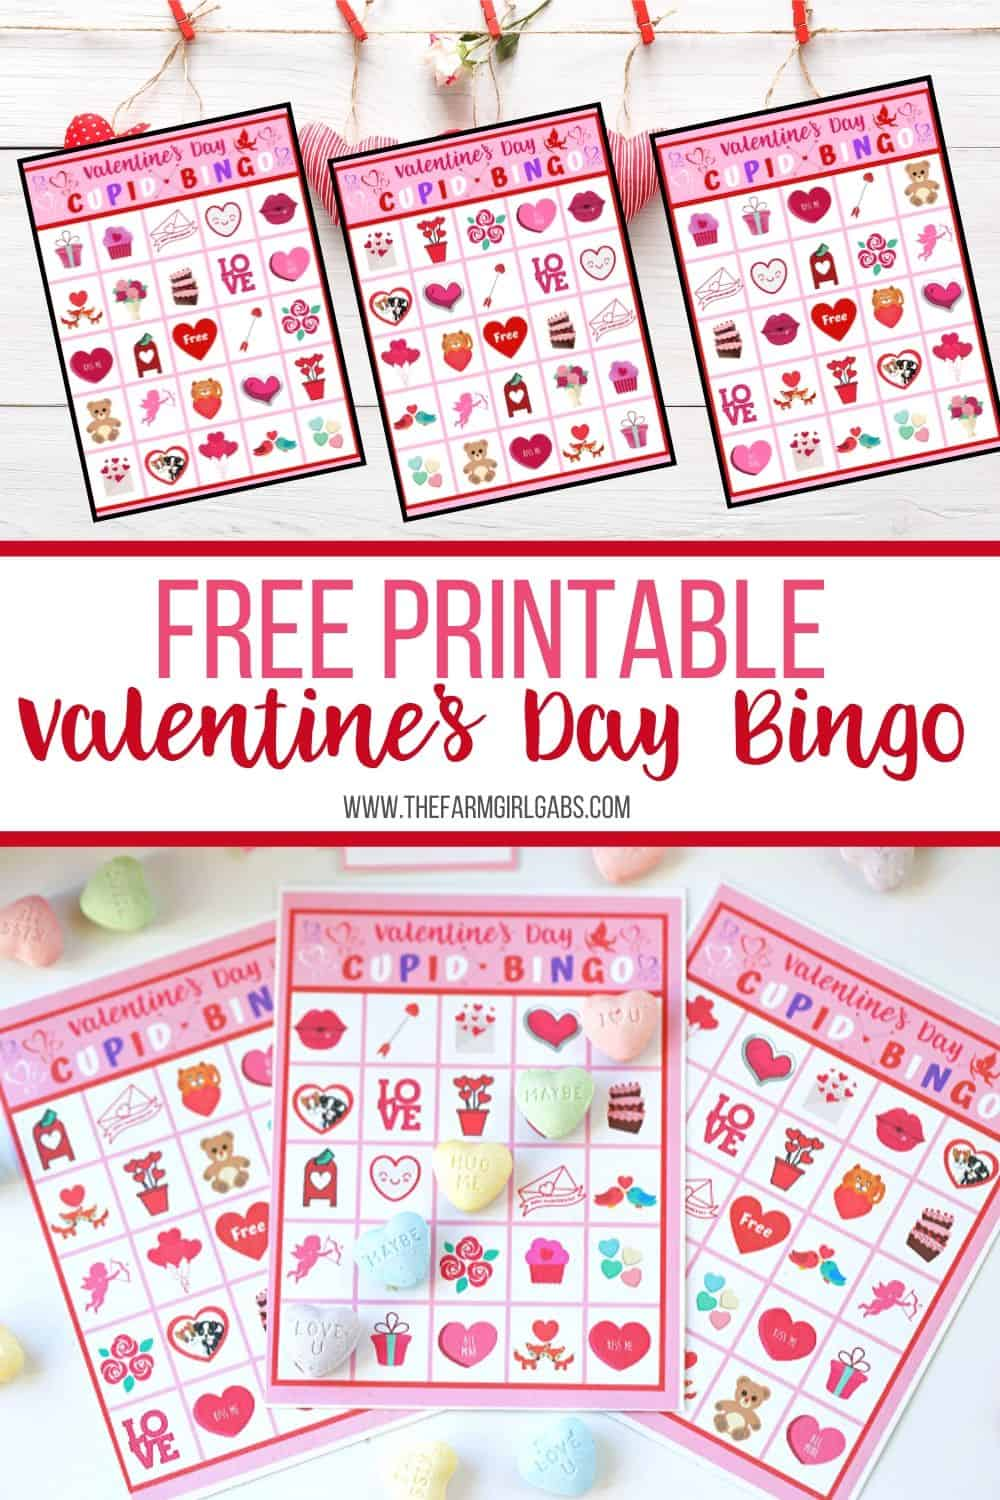 These free Valentine's Day Bingo cards are perfect for kids to play at home or classroom parties. Download these bingo cards today for some Valentine's Day fun! Download and print out this fun Valentine bingo game for hours of fun. #bingogame #valentinebingo #valentinesdaycraft #valentinesdayprintable